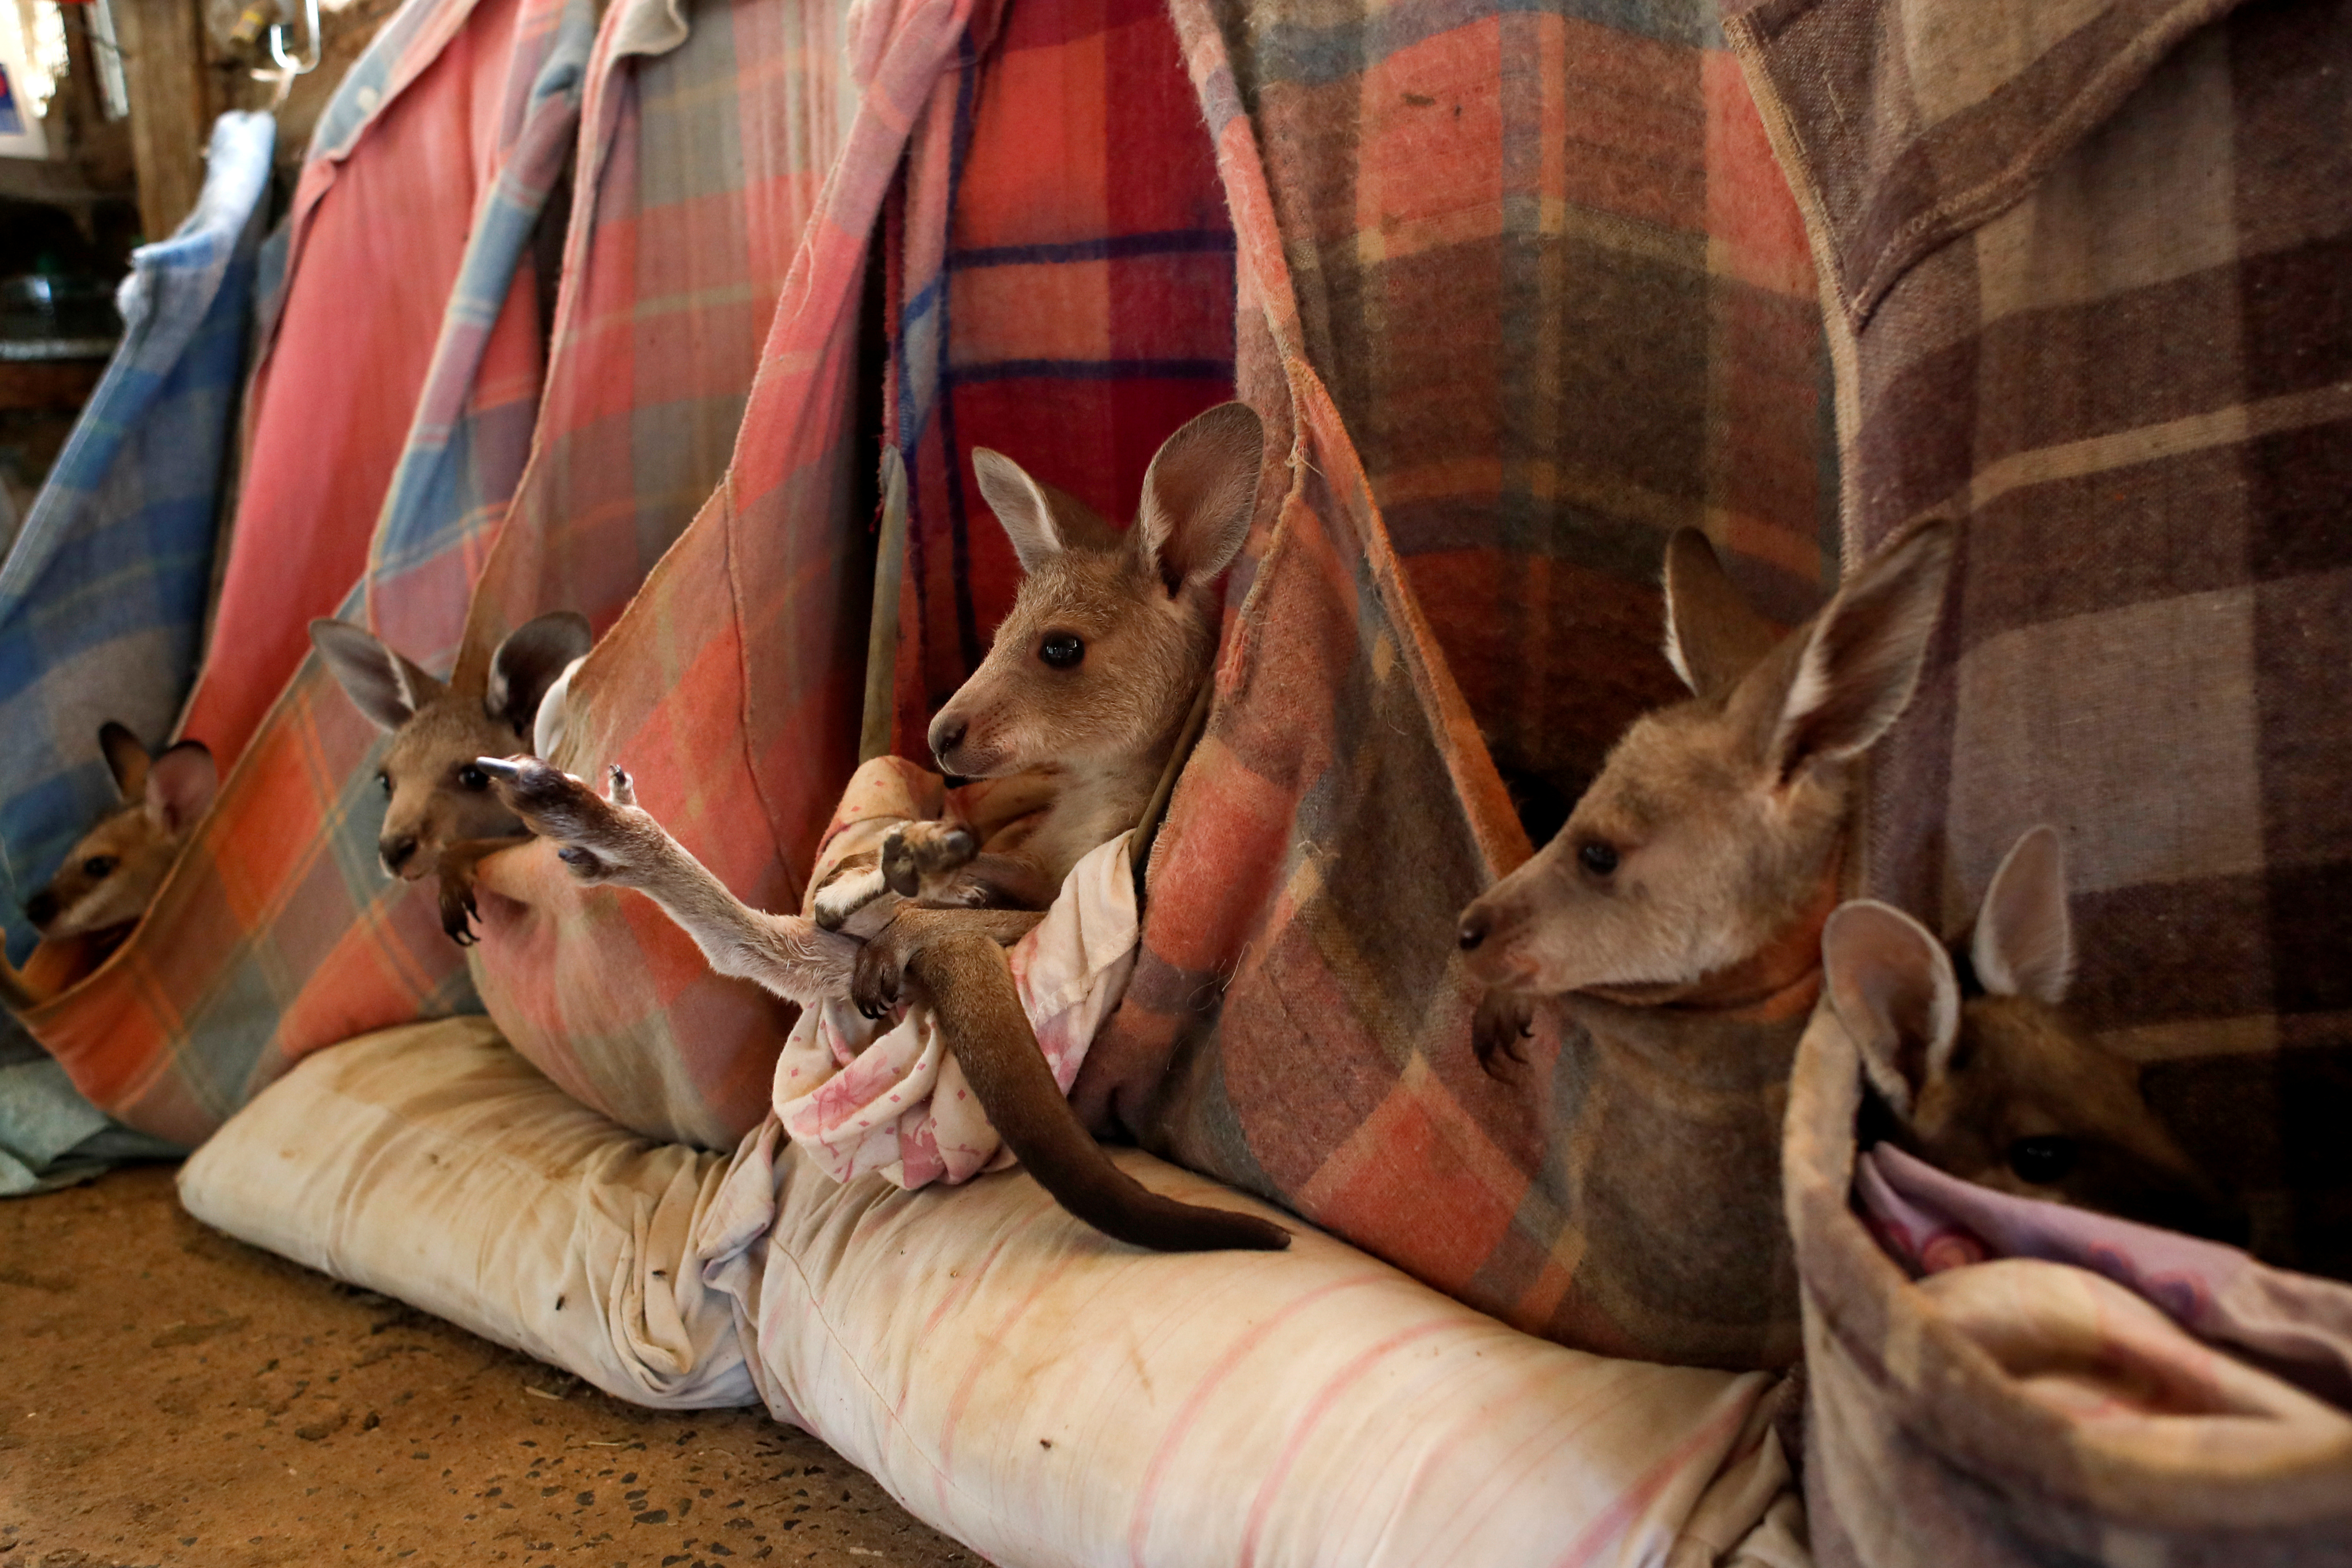 Help Me, Human! Researchers Claim Kangaroos Can Communicate With People